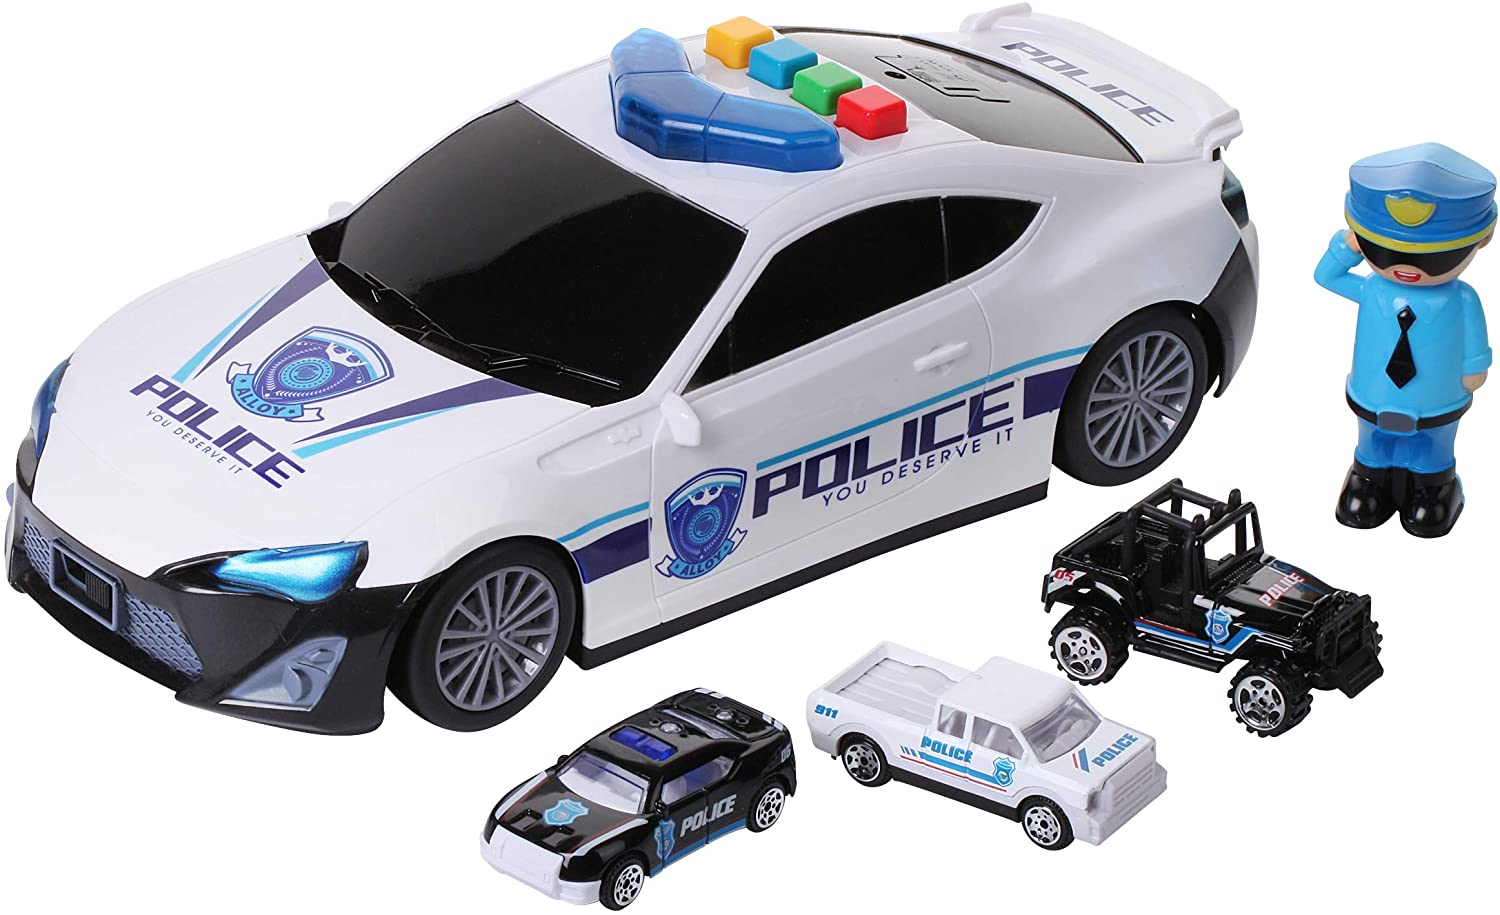 Dazmers Police Vehicle Storage Toy - Police Car Carrier Toy for Kids with Lights and Sounds - Police Cars Toys Set for Cops and Robbers Game, Includes a 3 Police Cars and a Police Officer